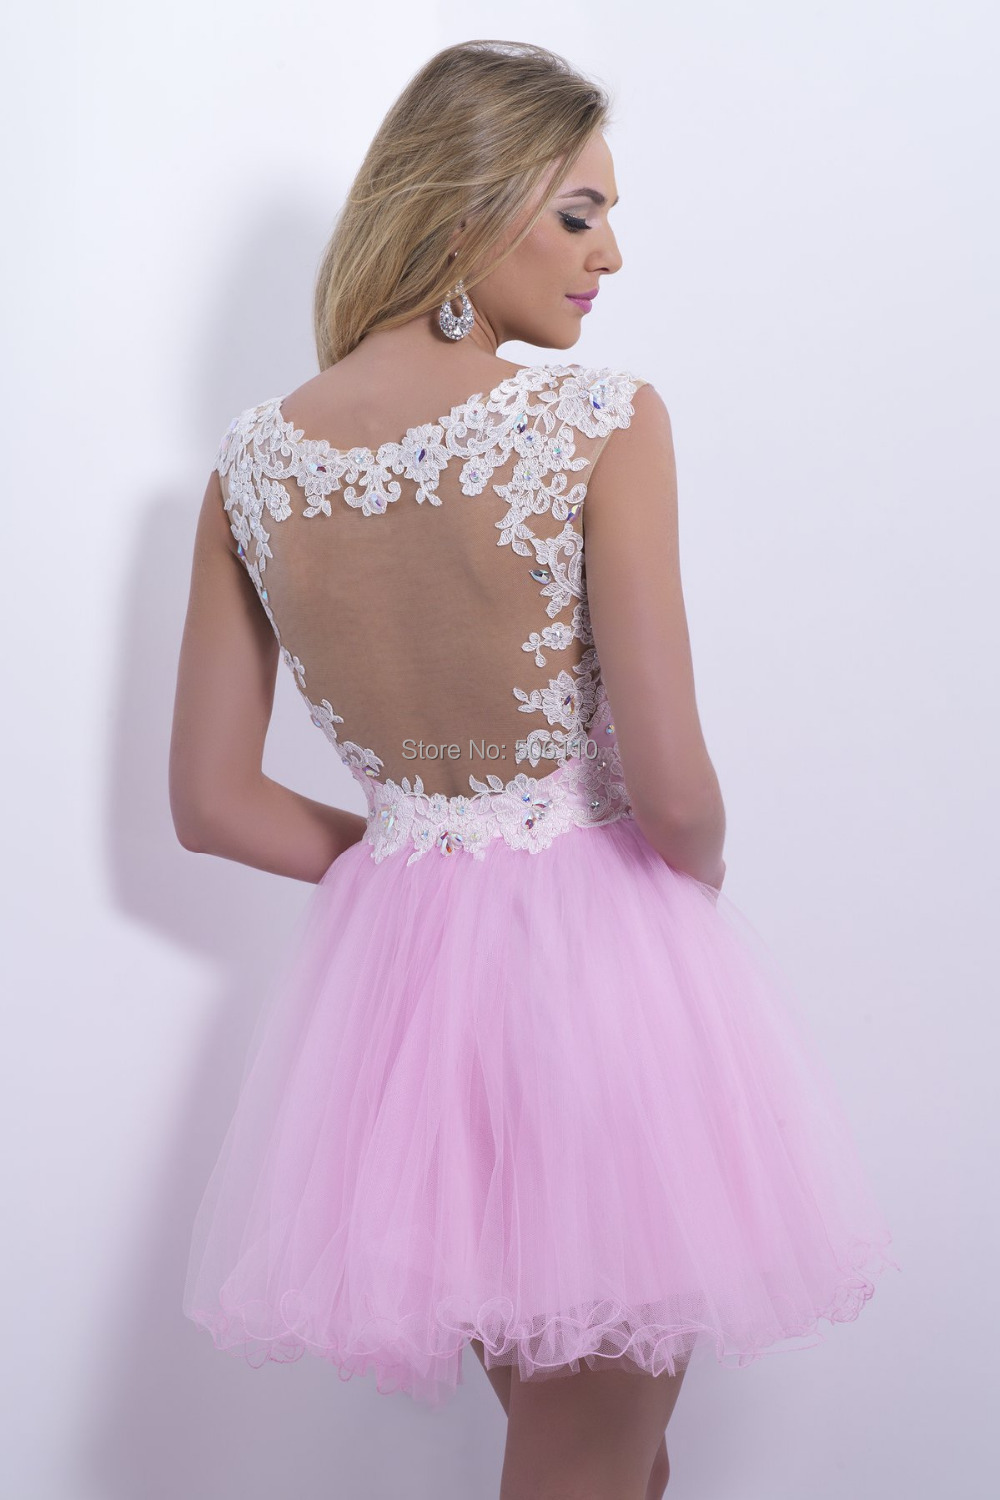 Collection Light Pink Homecoming Dresses Pictures - Reikian